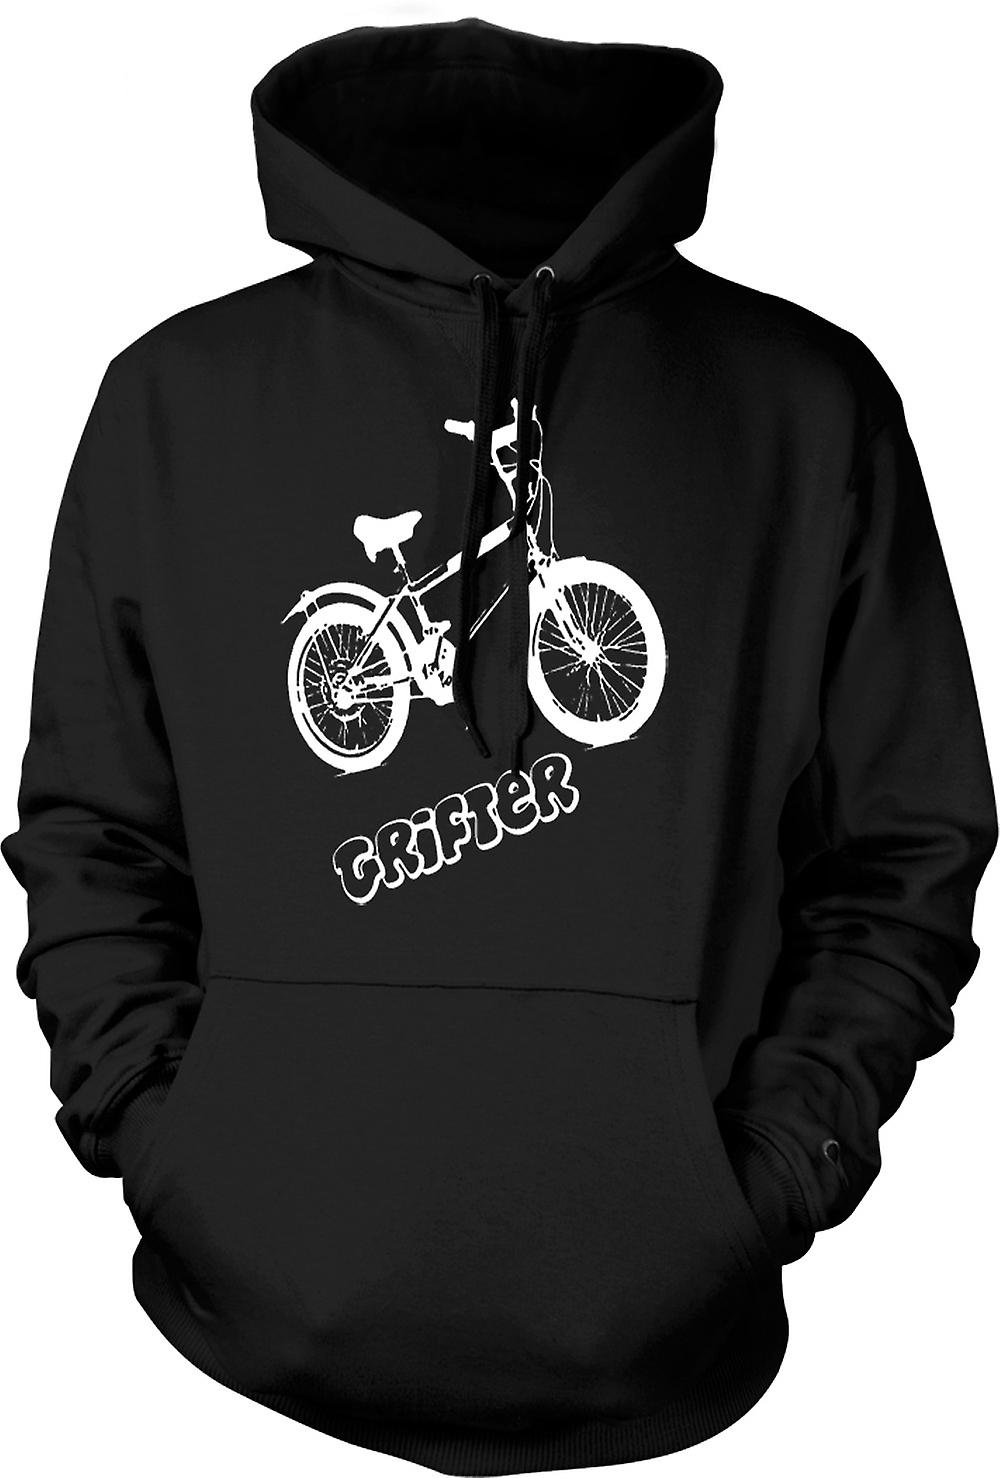 Mens Hoodie - Grifter - Old Skool Retro Bike